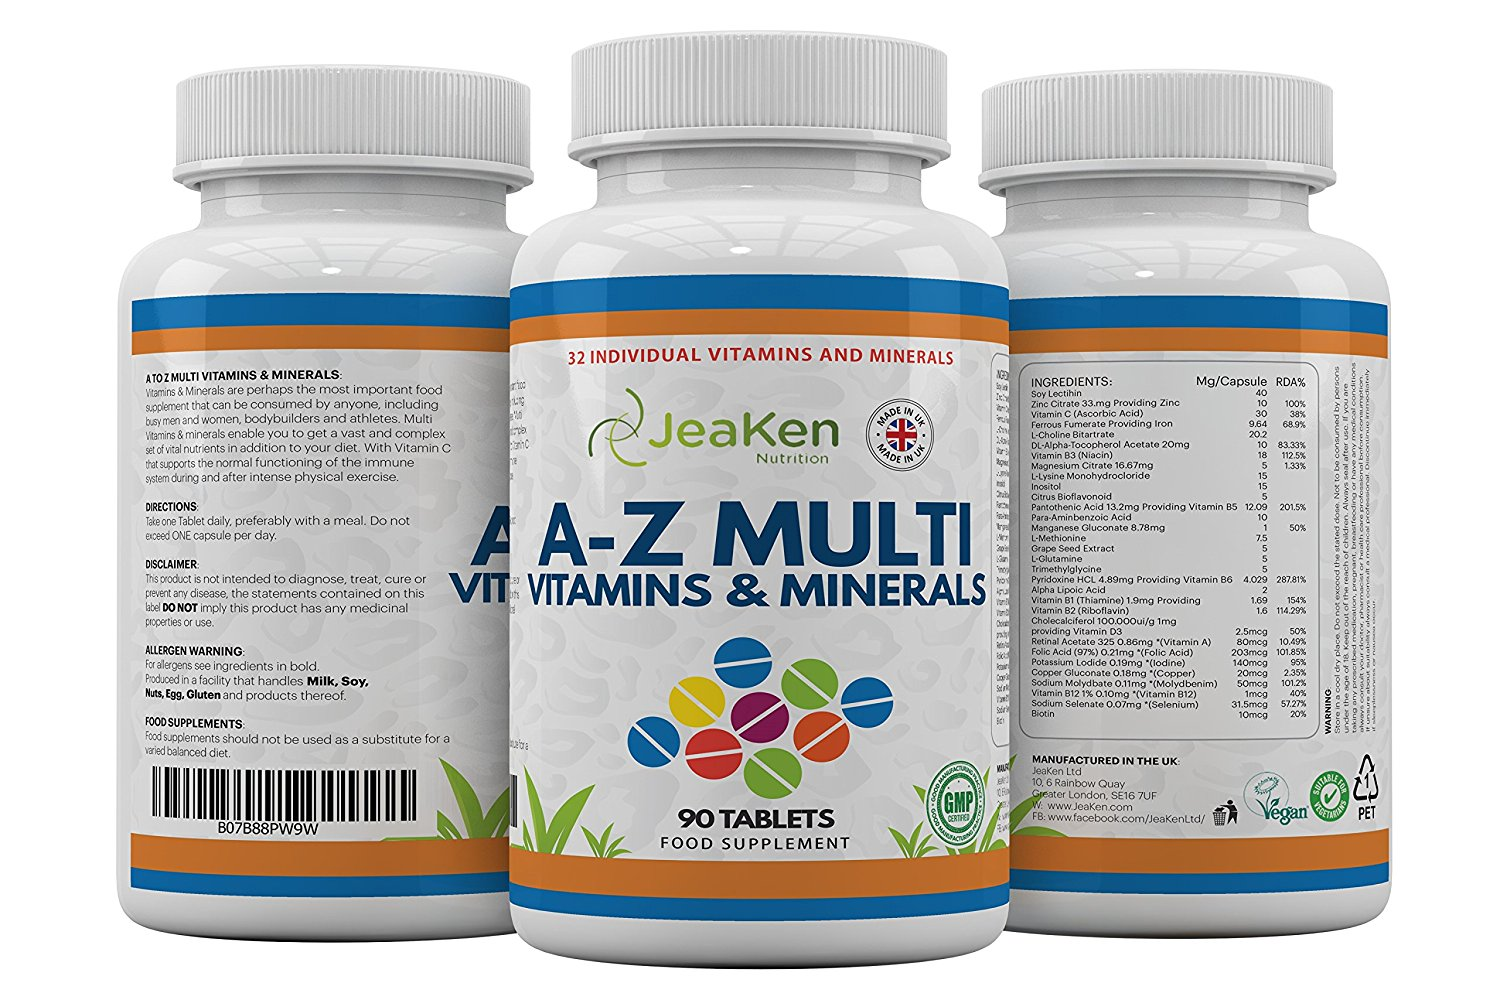 A Z Multivitamins And Minerals Tablets By Jeaken 32 Multi Vitamins For Woman And Multi Vitamins For Men Multiple Minerals Supplements To Supercharge Your Health 90 Vegan Multivitamins Tablets Multi